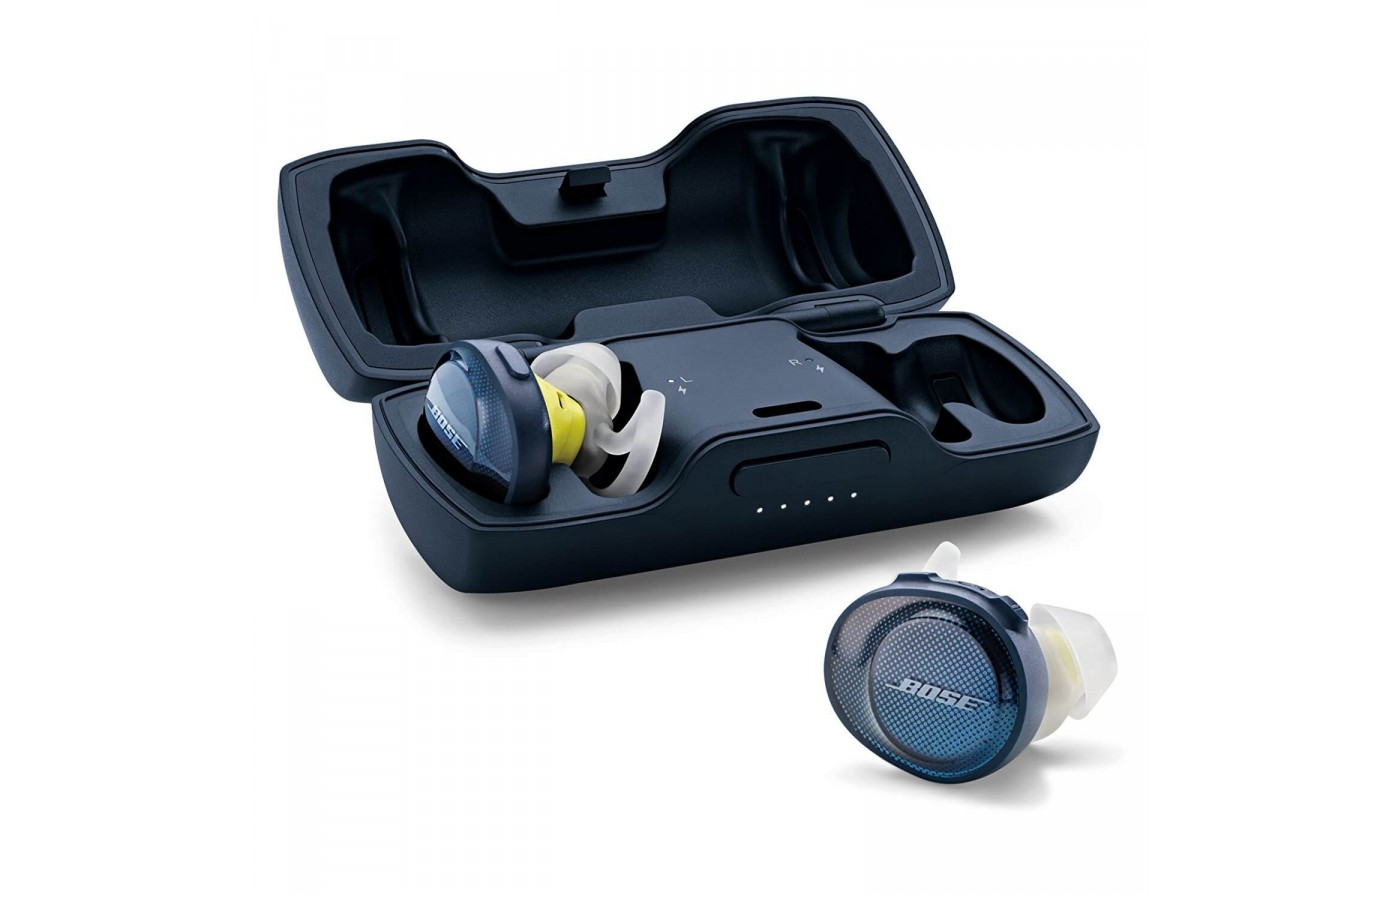 The The Bose SoundSport Free headphones come with a travel charging case